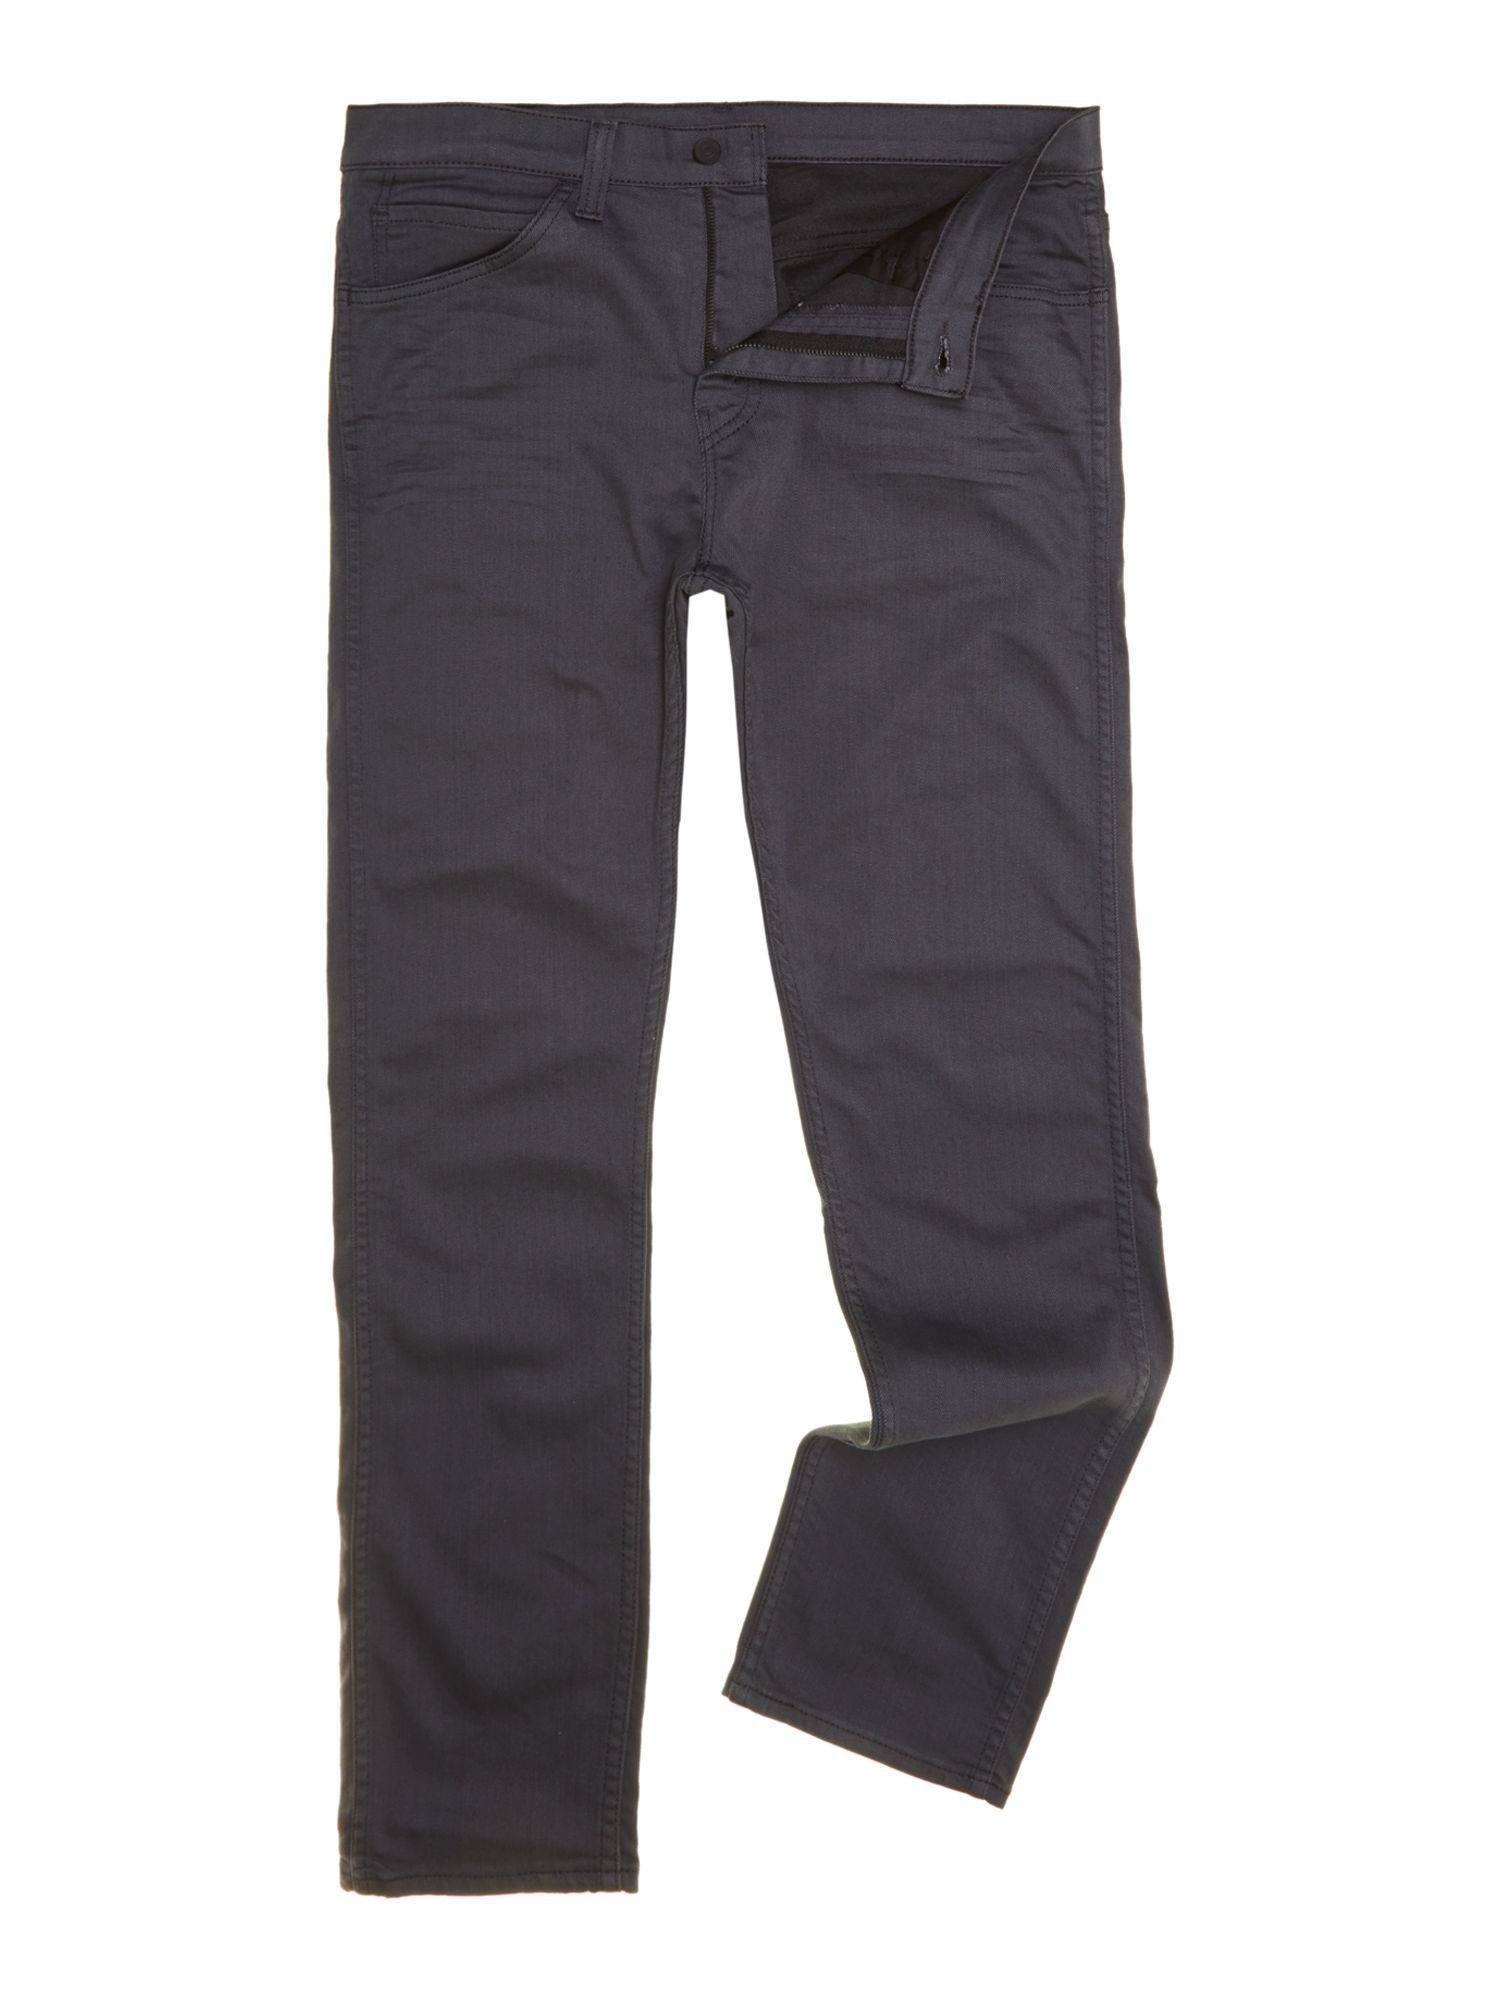 508 tapered jeans